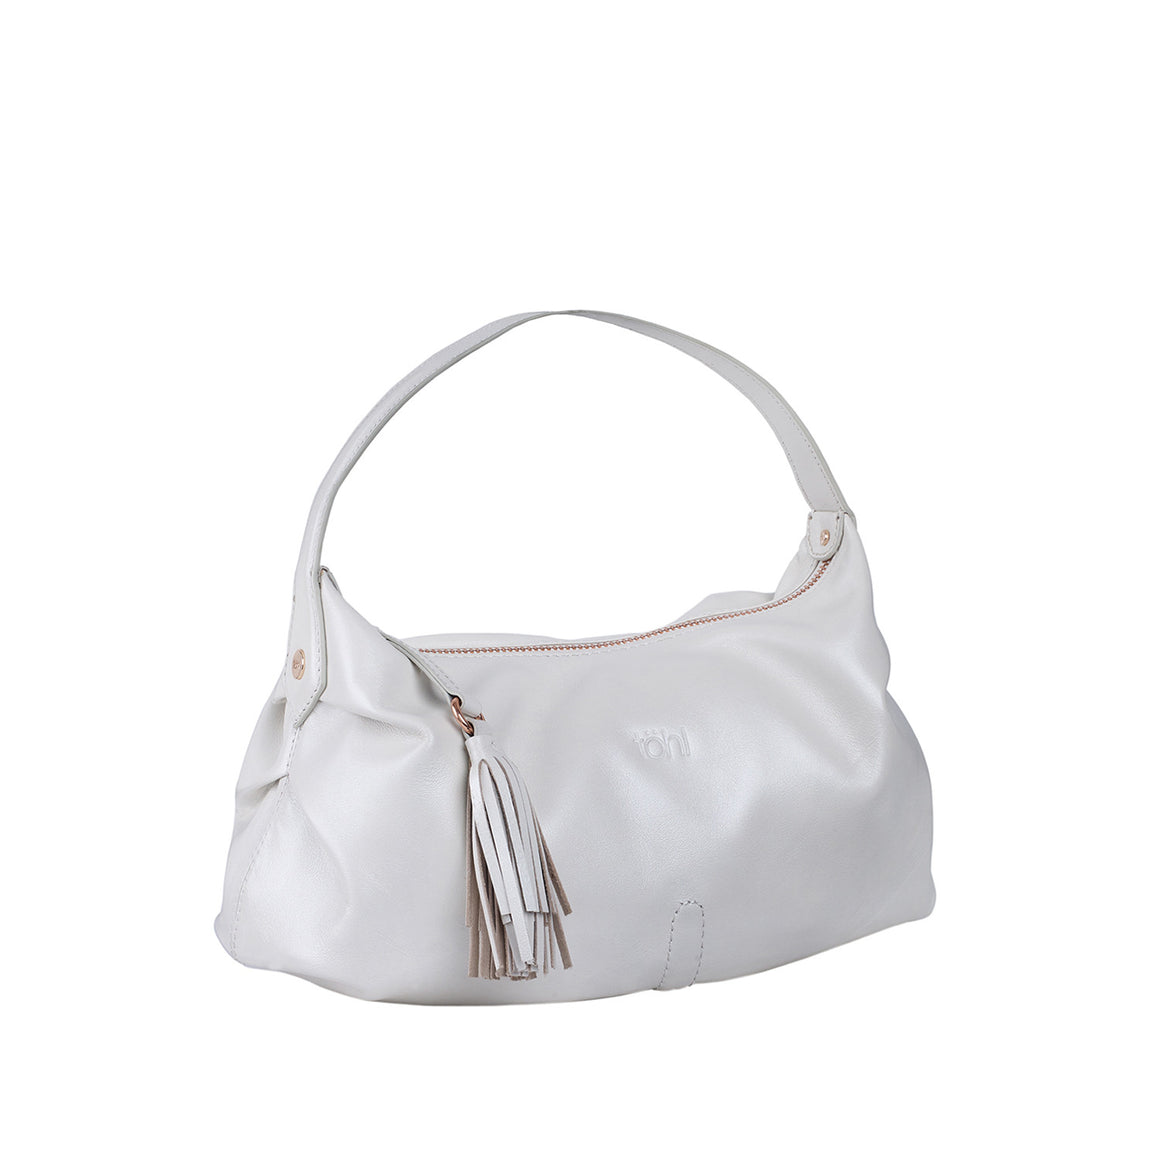 HH 0002 - TOHL MARISA WOMEN'S SHOULDER BAGUETTE - PEARL WEISS